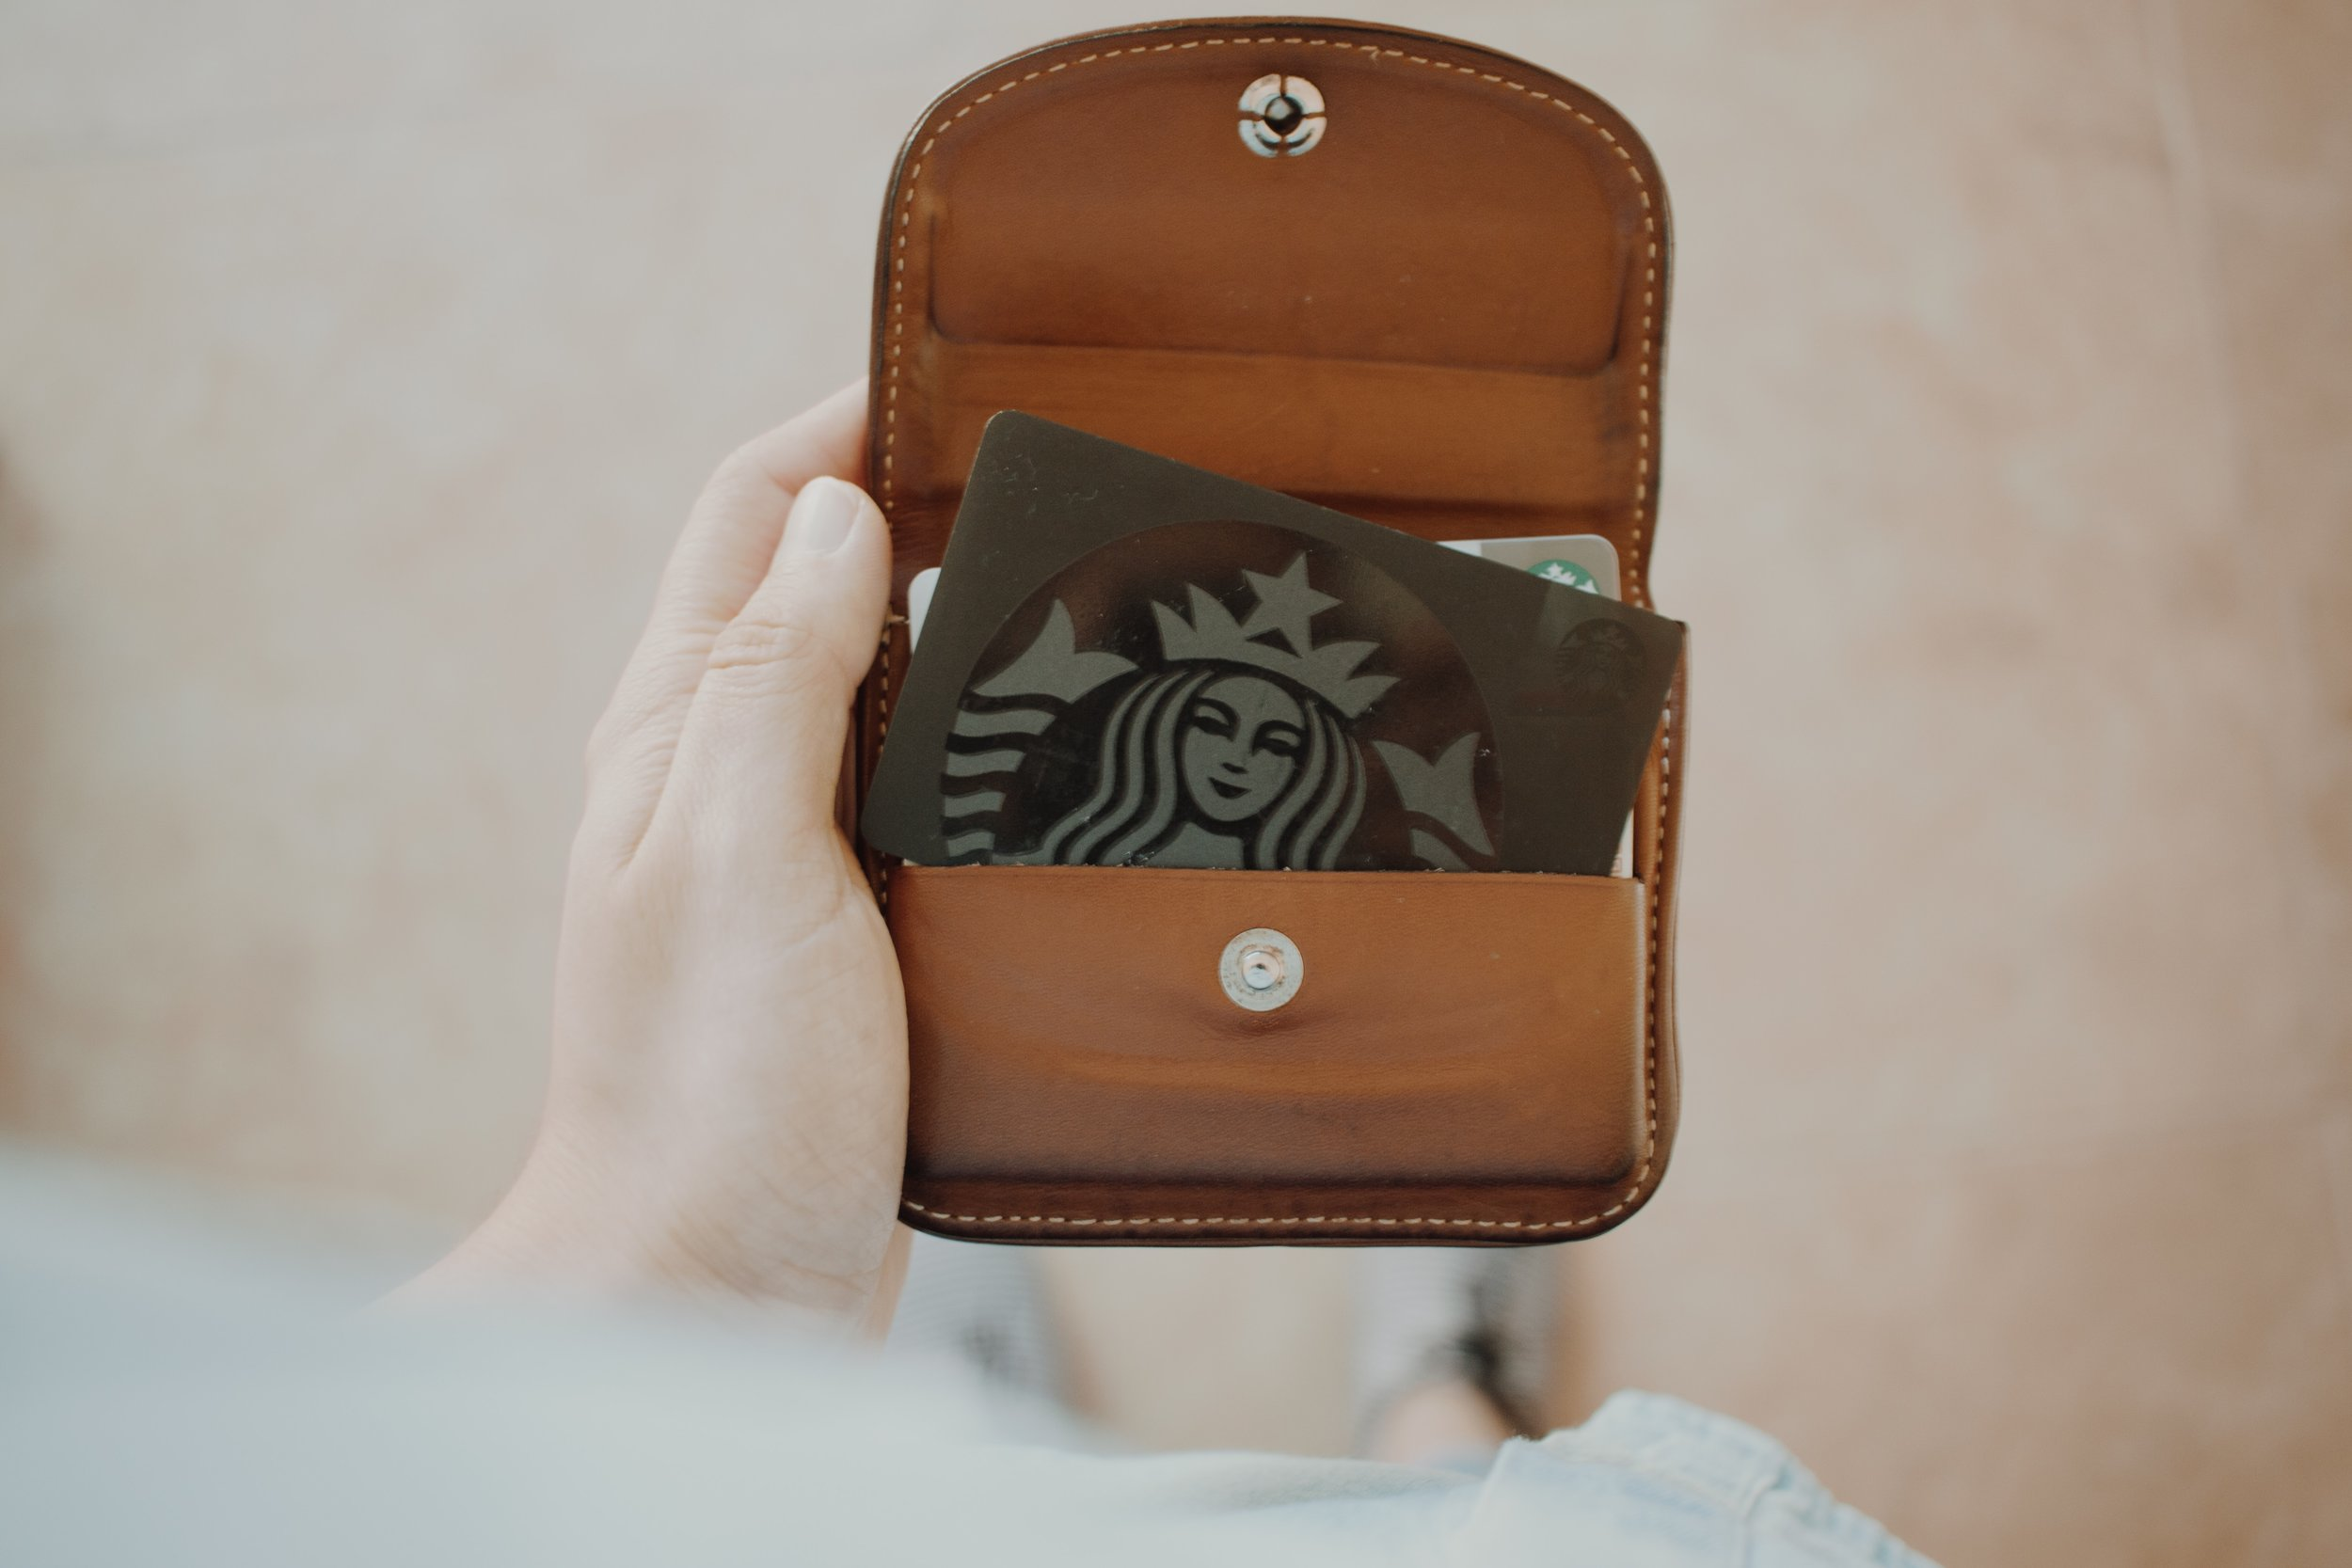 Starbucks loyalty card: Photo by Rebecca Aldama on Unsplash